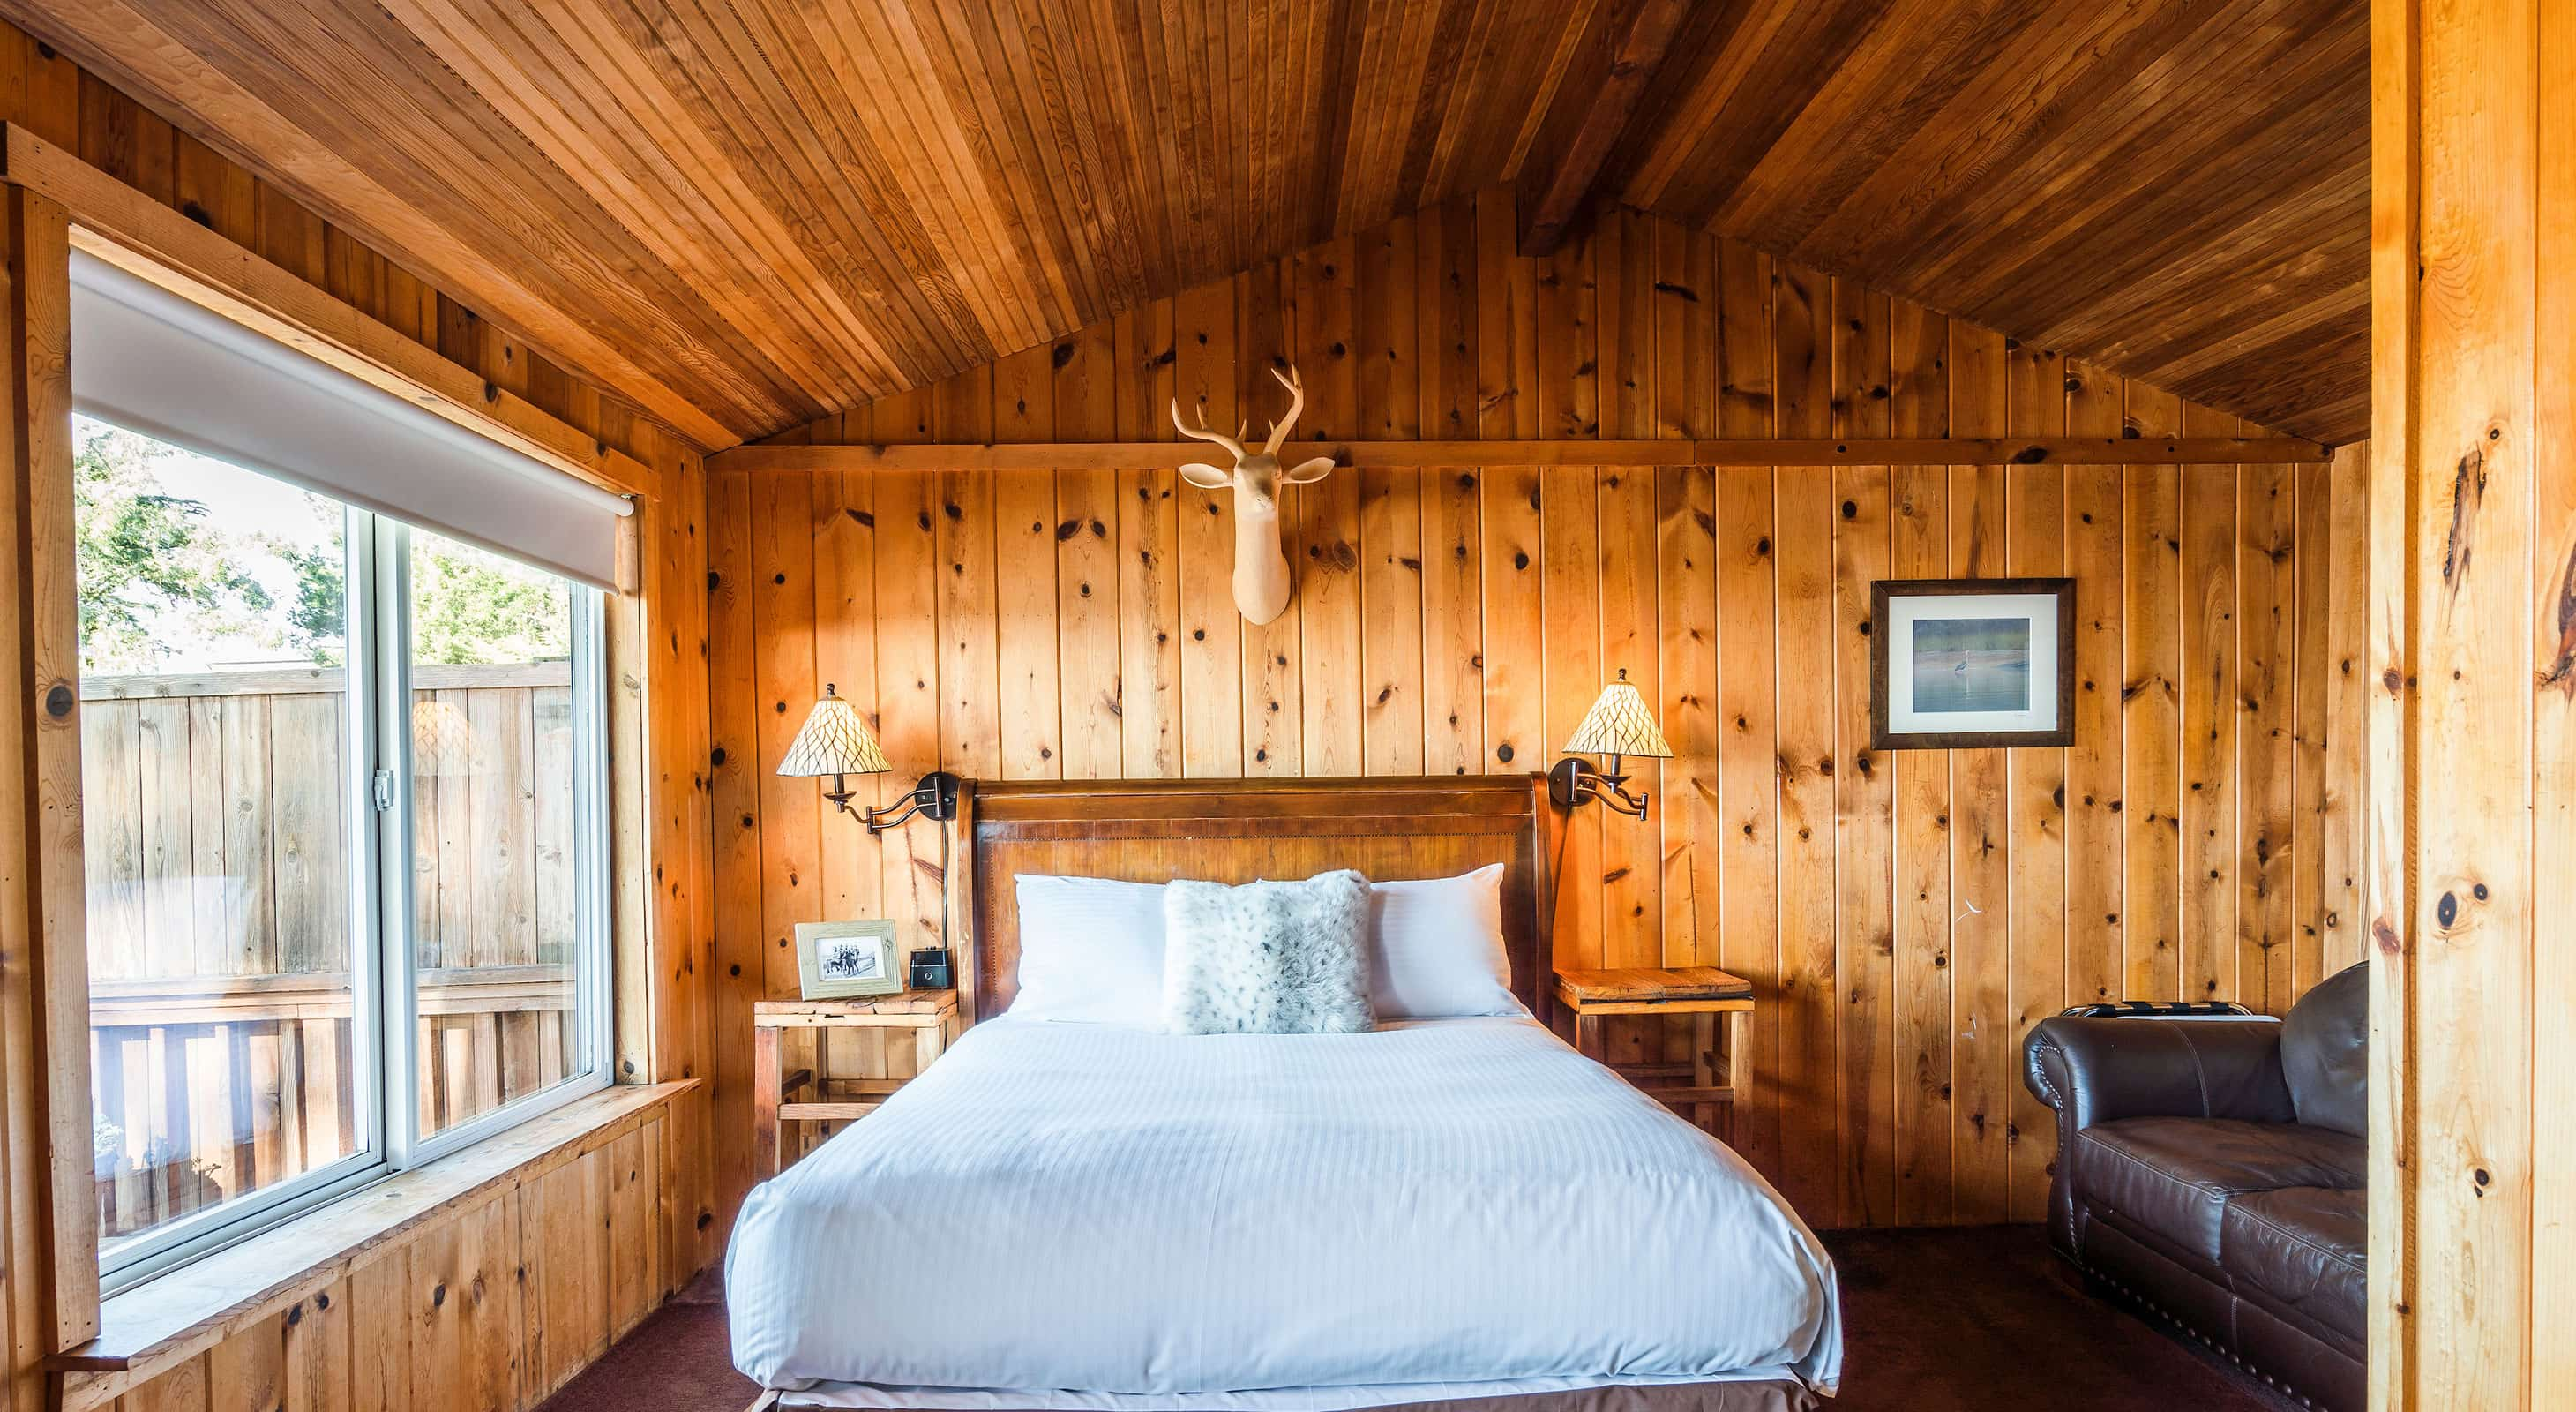 Bed beneath mounted deer head in wood-paneled room in Cabin 2